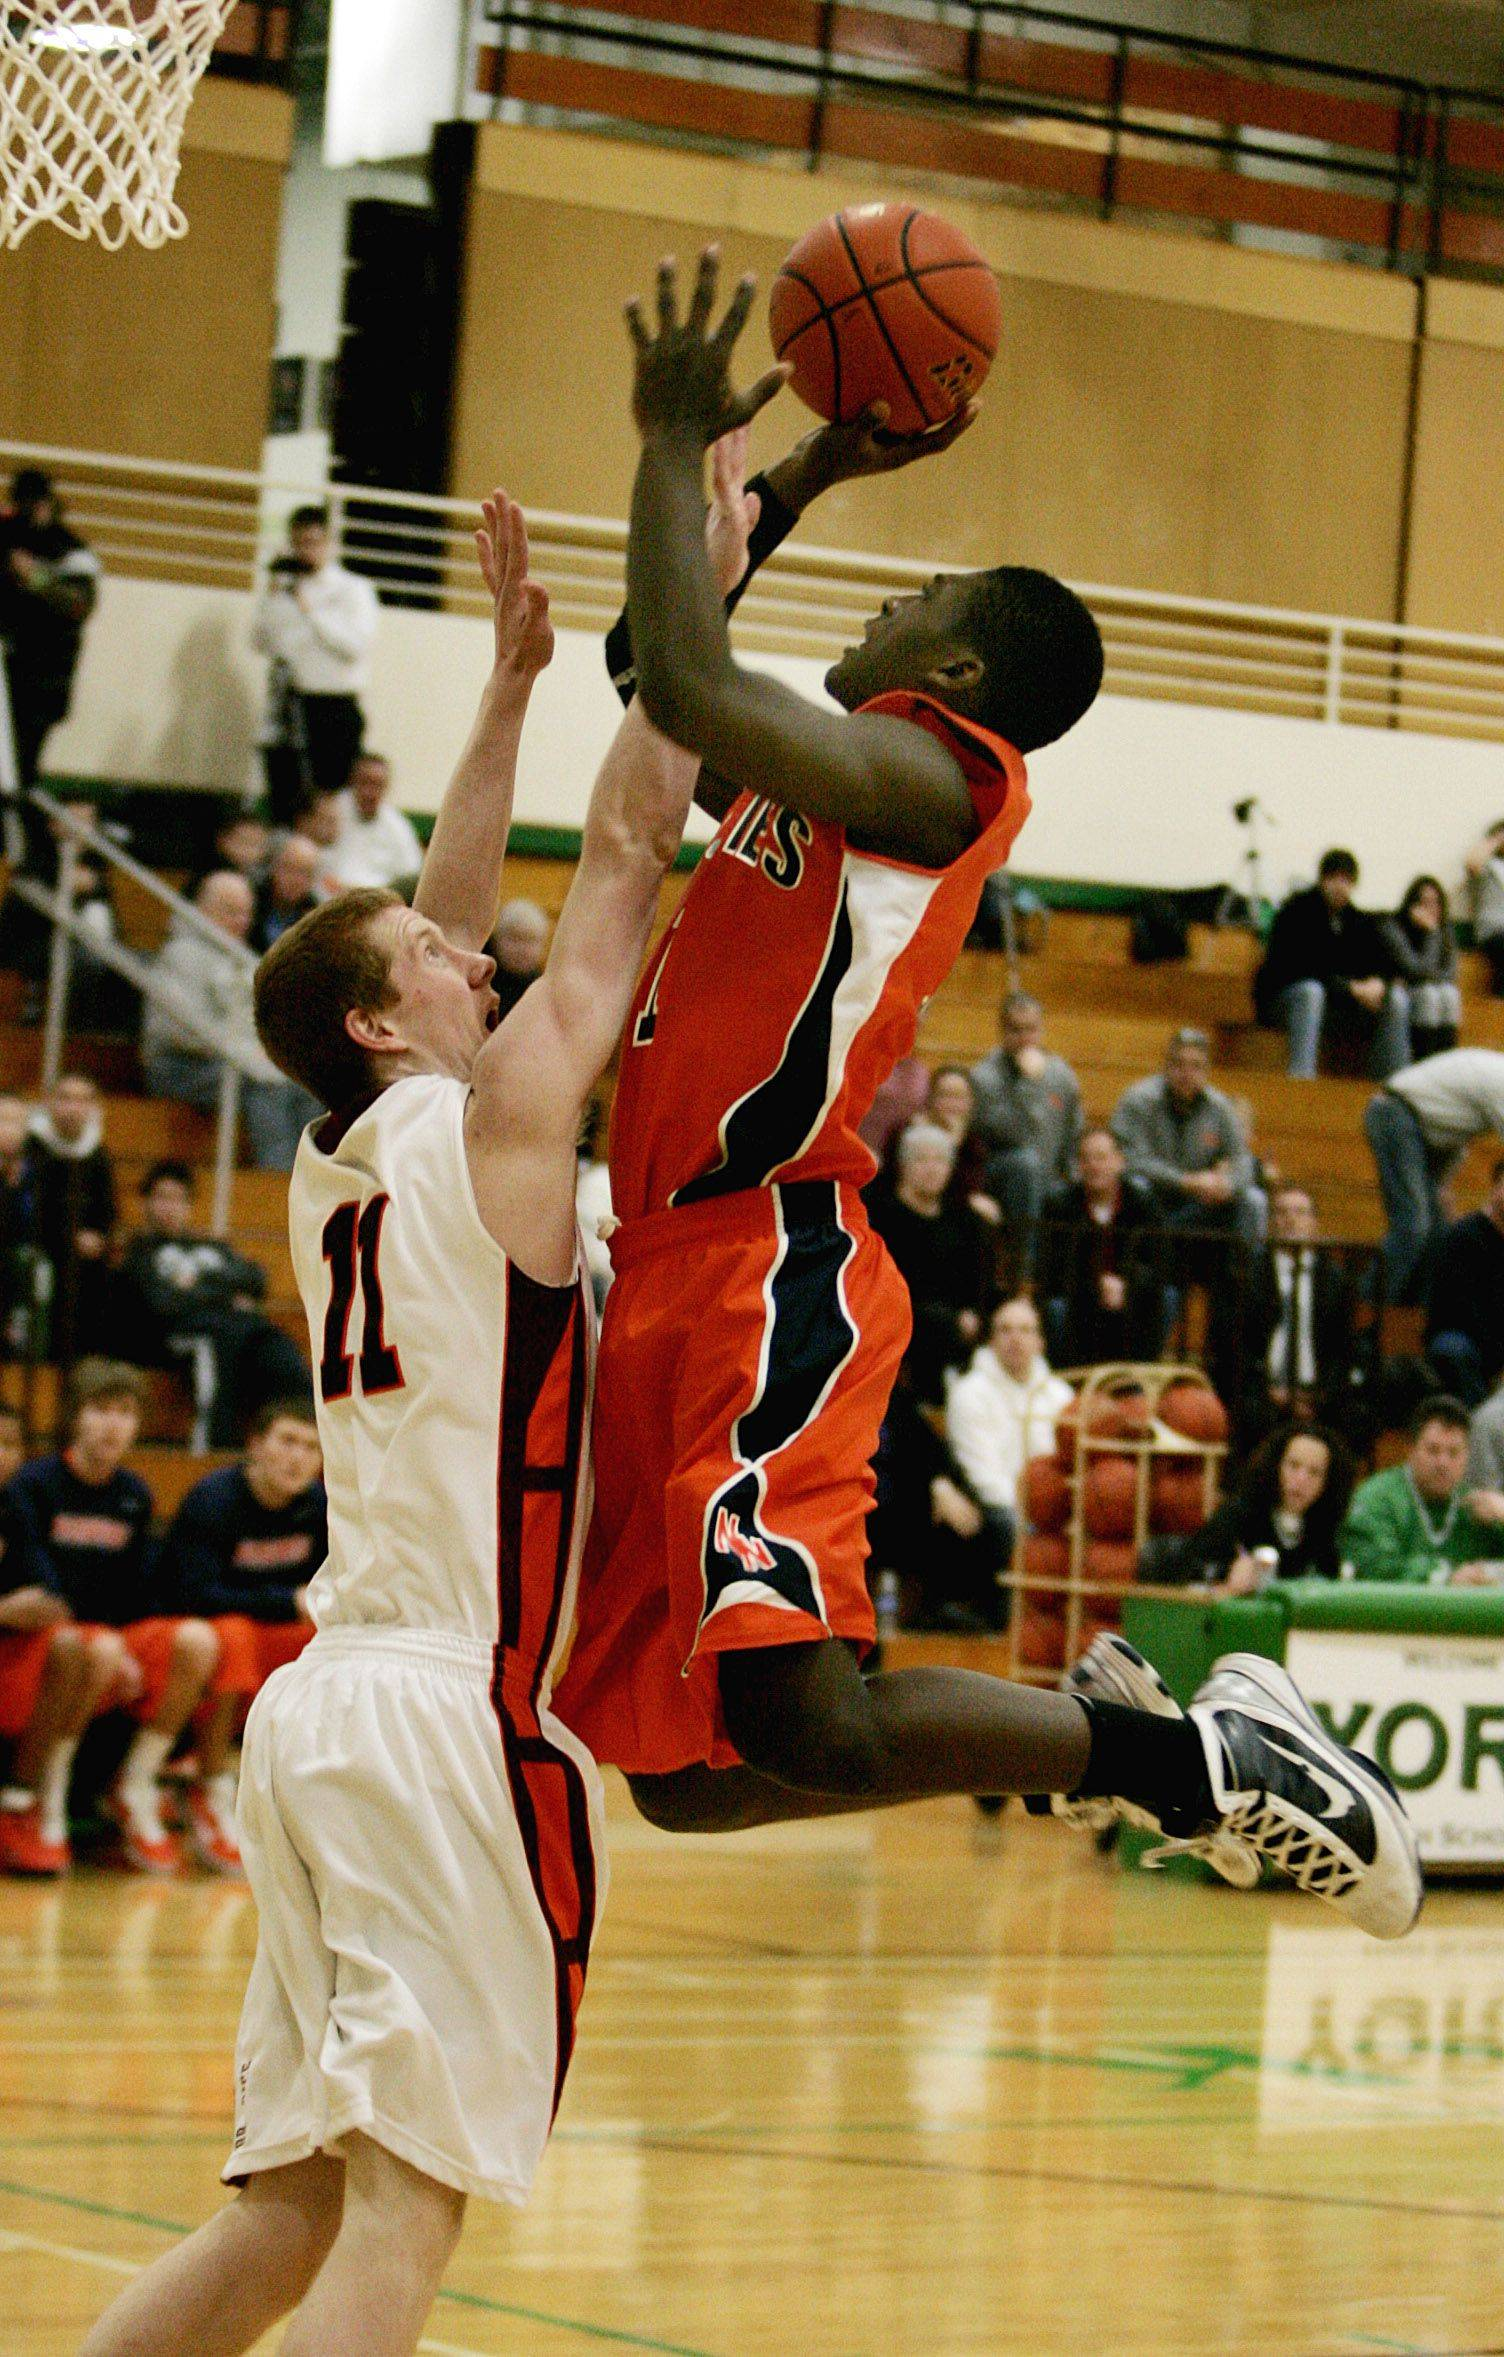 Naperville North's Jovonn Griffin, right, goes up for the basket against Brother Rice's Bob Hayes, left, during their game Monday night.